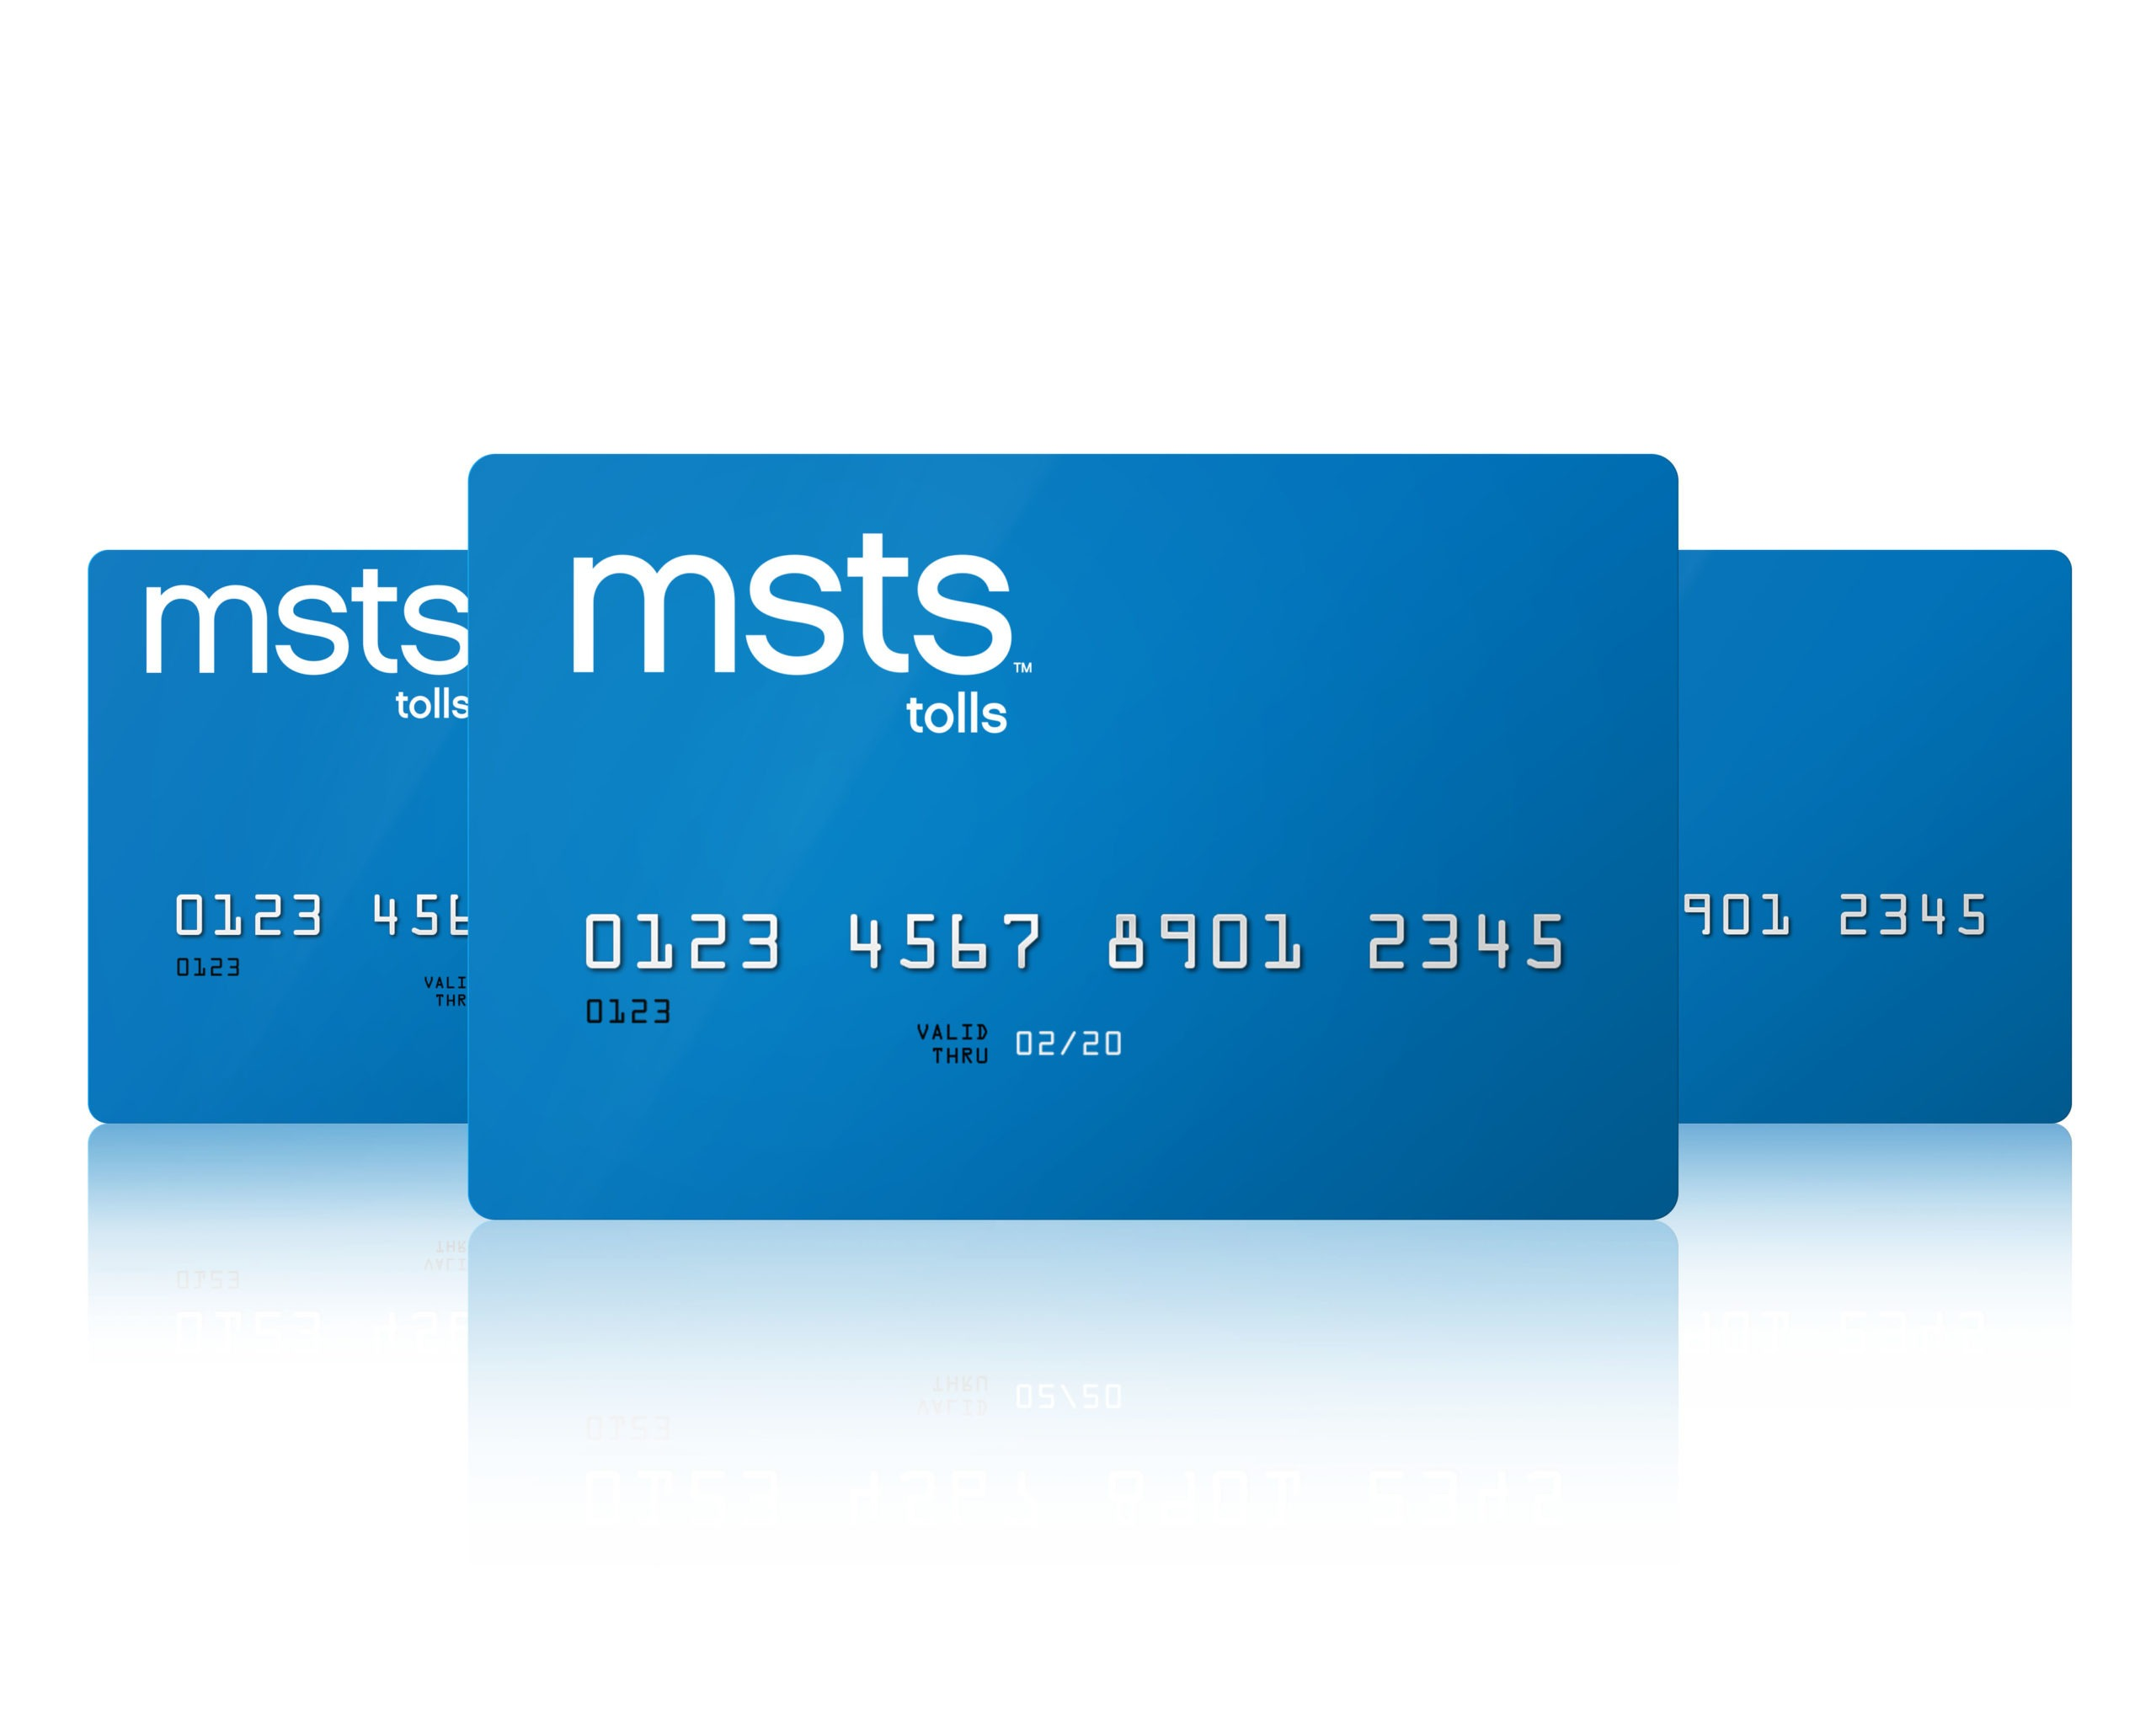 Image of the MSTS Tolls Card.